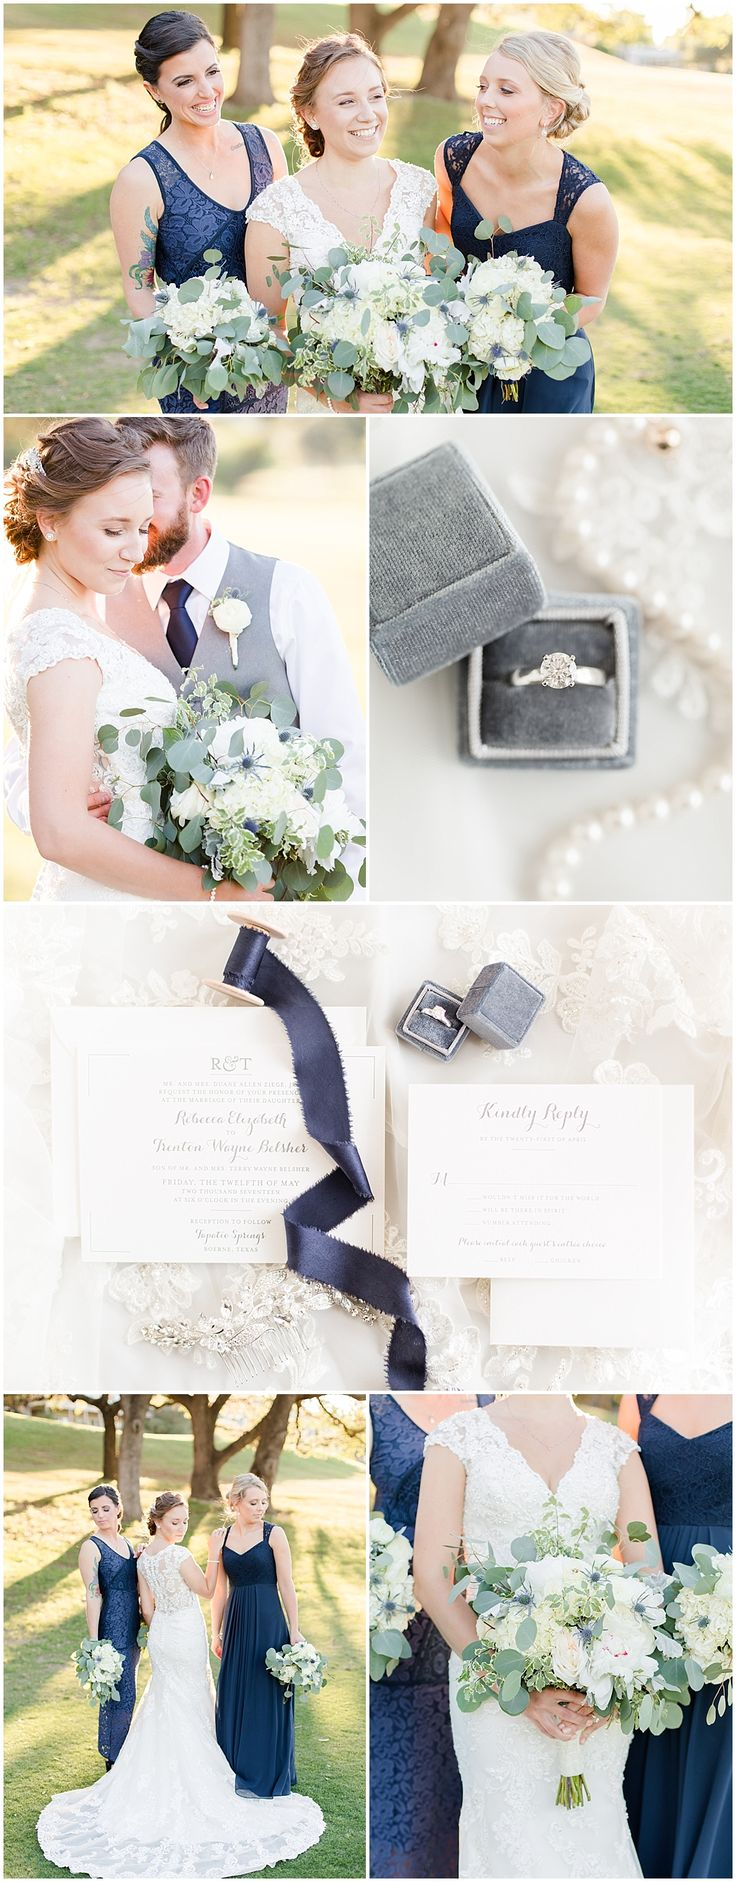 NAVY + GREY WEDDING INSPIRATION | White and Navy Bouquet | Navy Bridesmaids Dresses | Grey The Mrs Box | Navy Silk Ribbon | Grey Groomsmen Suits | Navy and Grey Wedding at Tapatio Springs Resort in Boerne Texas by Allison Jeffers Wedding Photography 0136